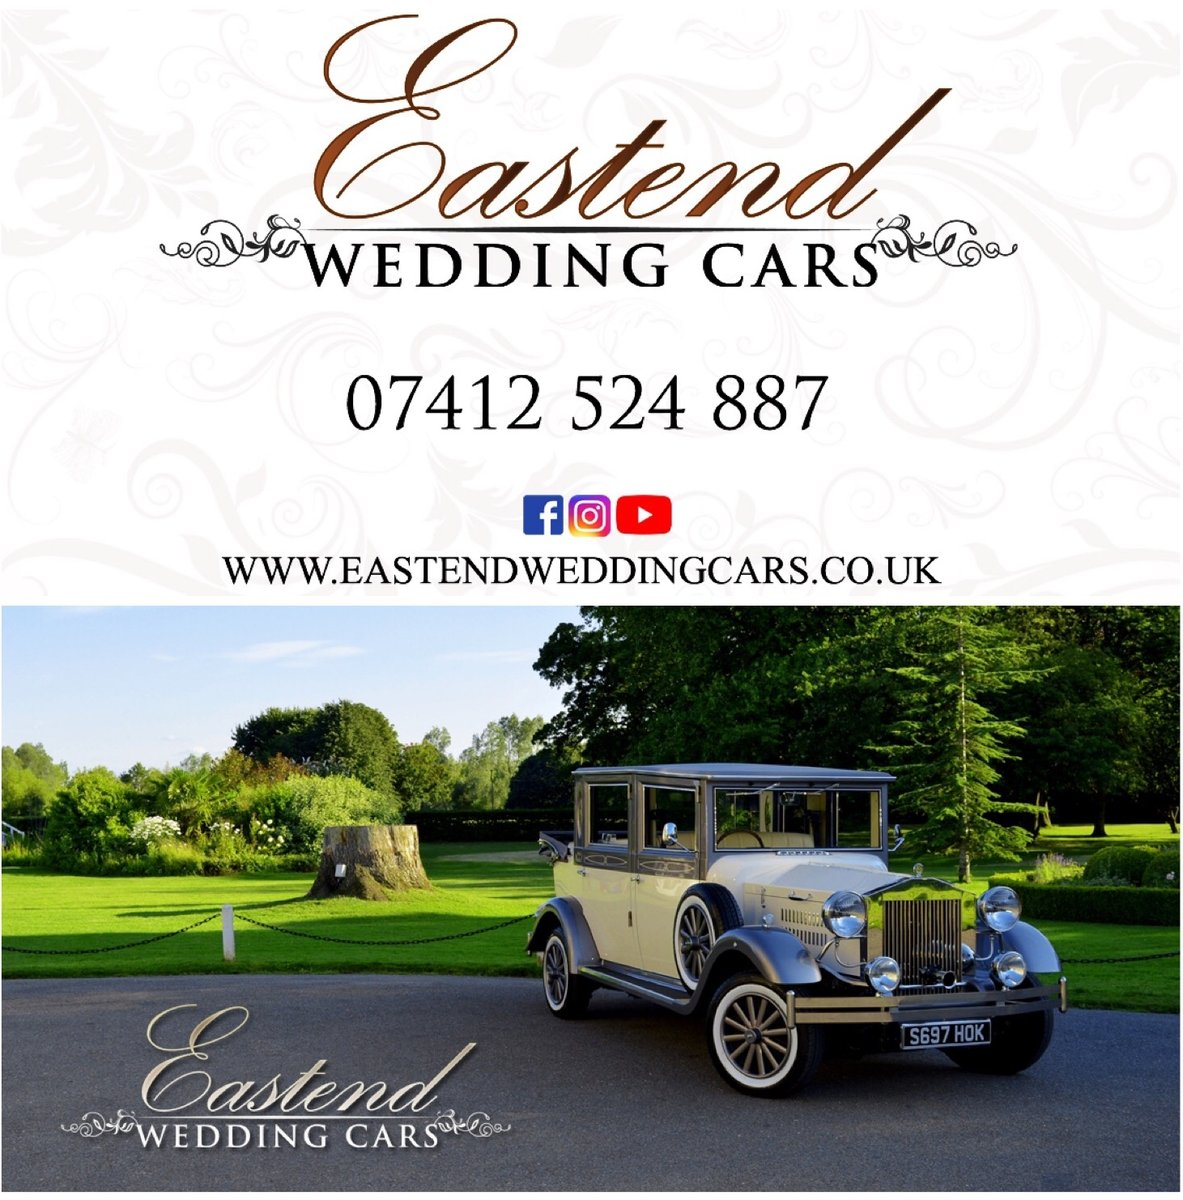 2018 Vintage wedding car hire For Hire (picture 6 of 6)